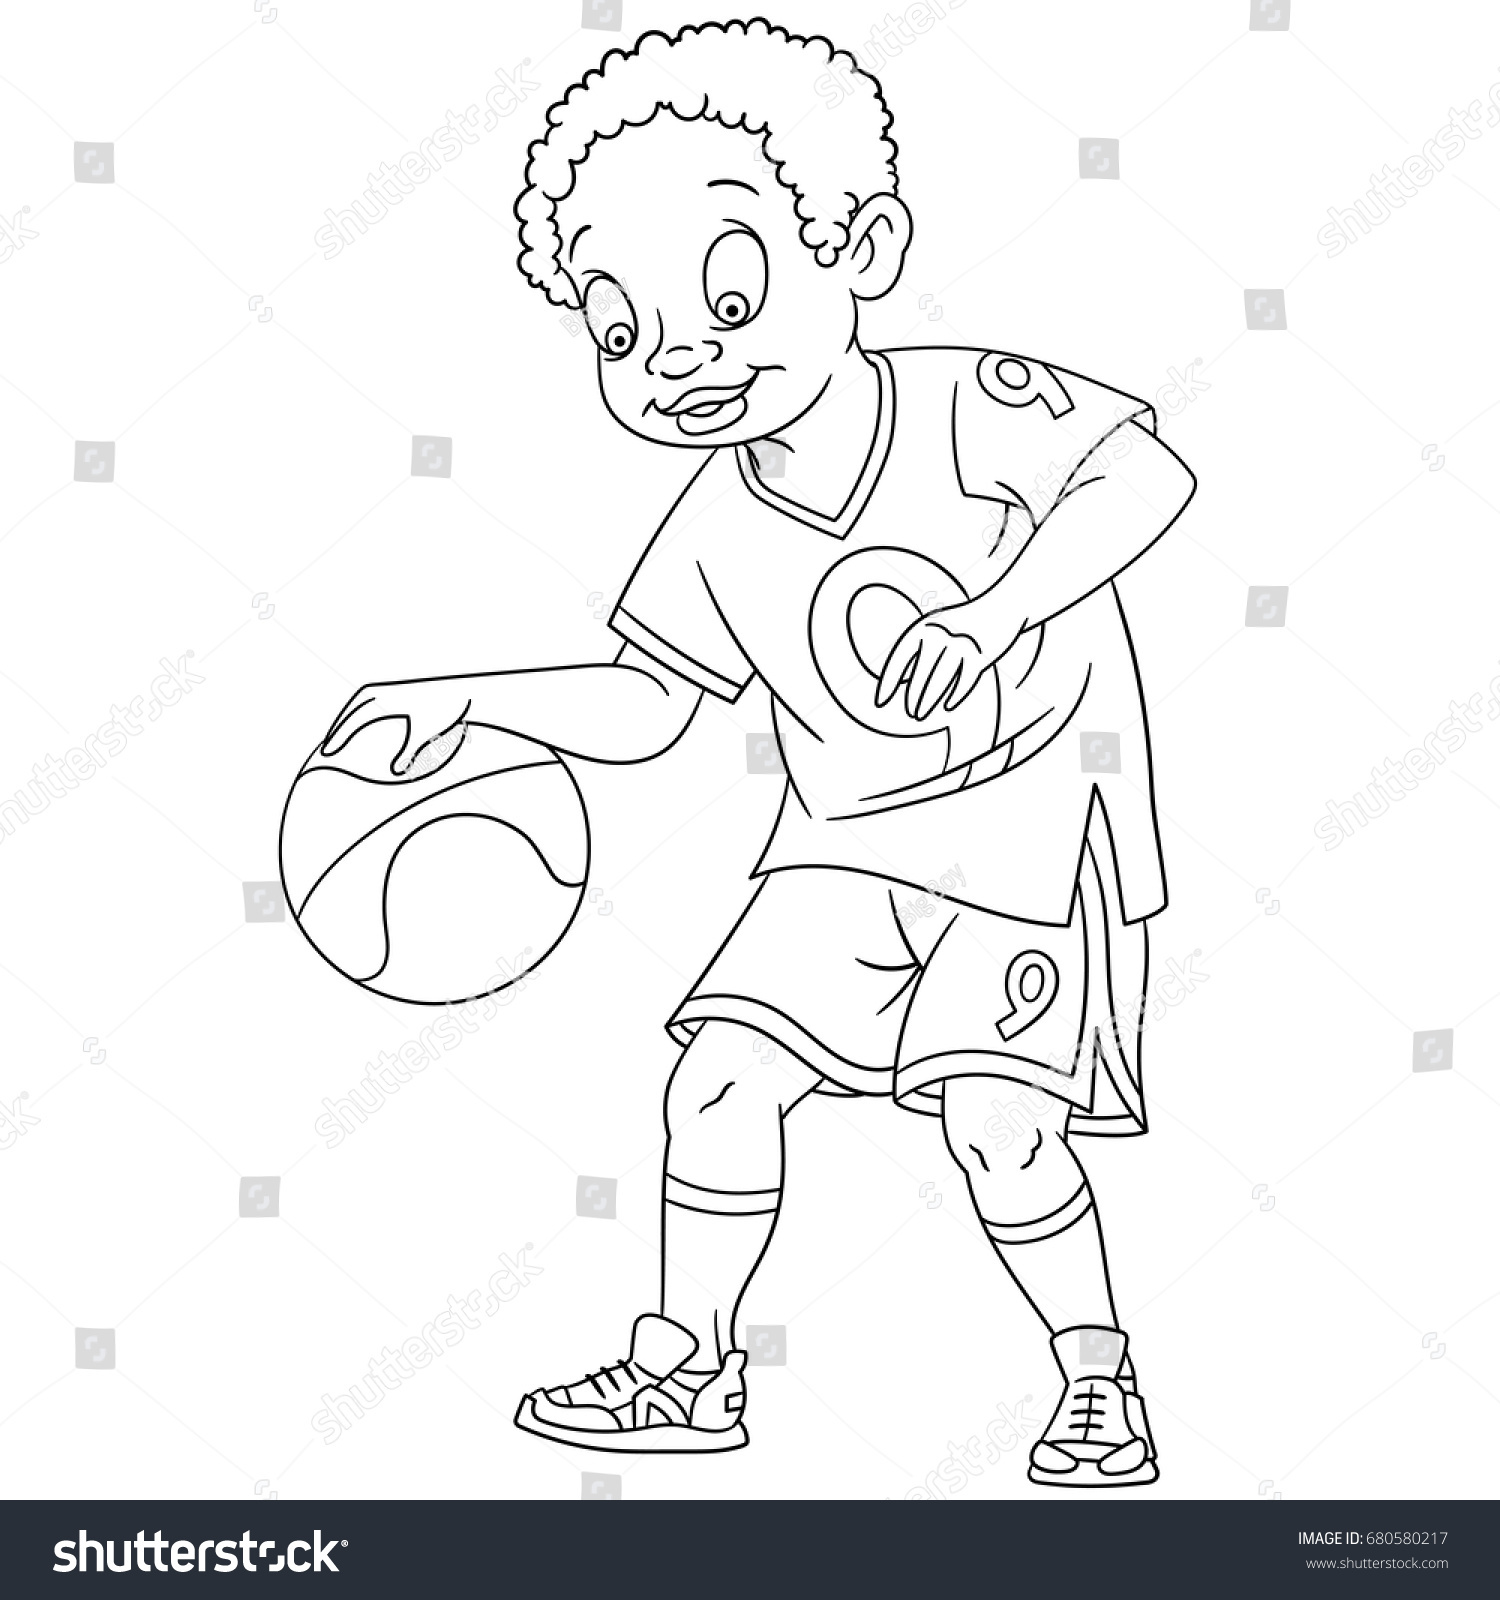 Coloring Page Boy Playing Basketball Colouring Stock Vector (Royalty ...